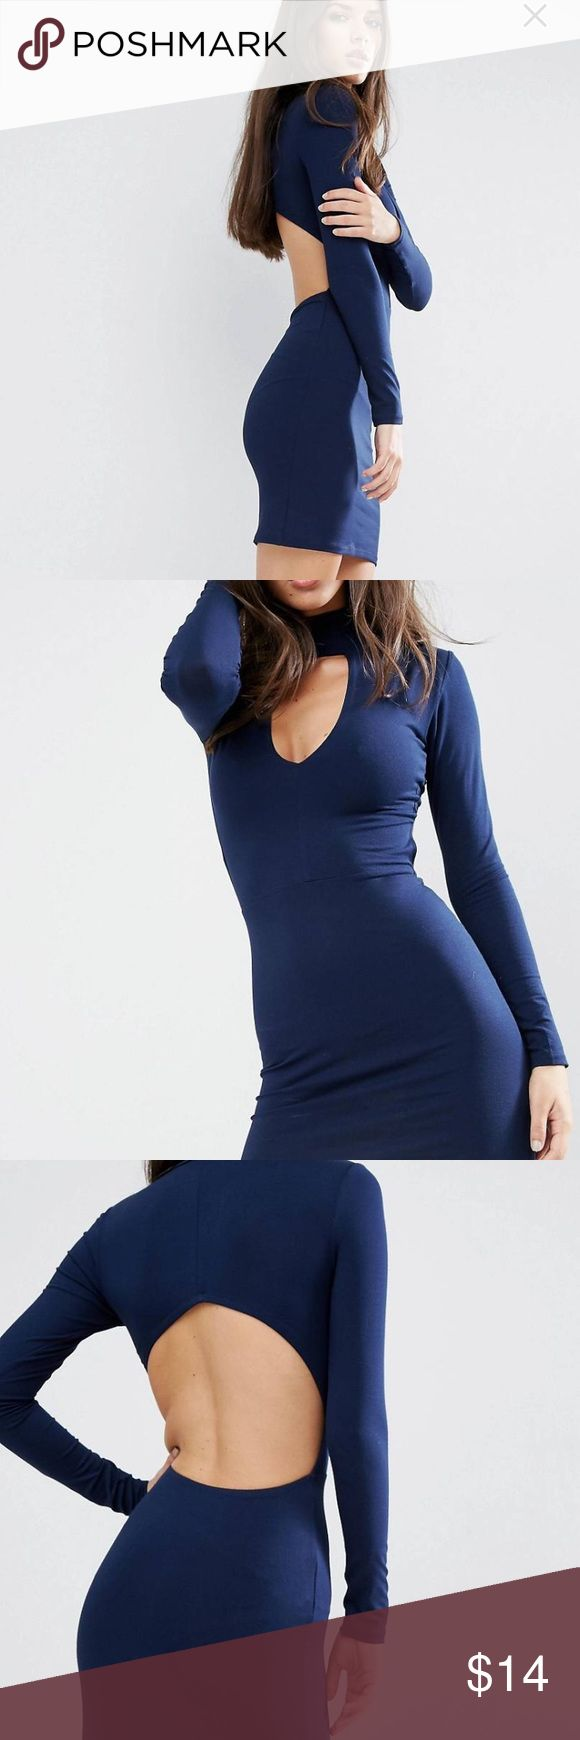 ASOS High Neck Open Back Long Sleeve Mini Dress Nice flirty little number great for a date night or girls night! Showy Showy! Asos Dresses Mini